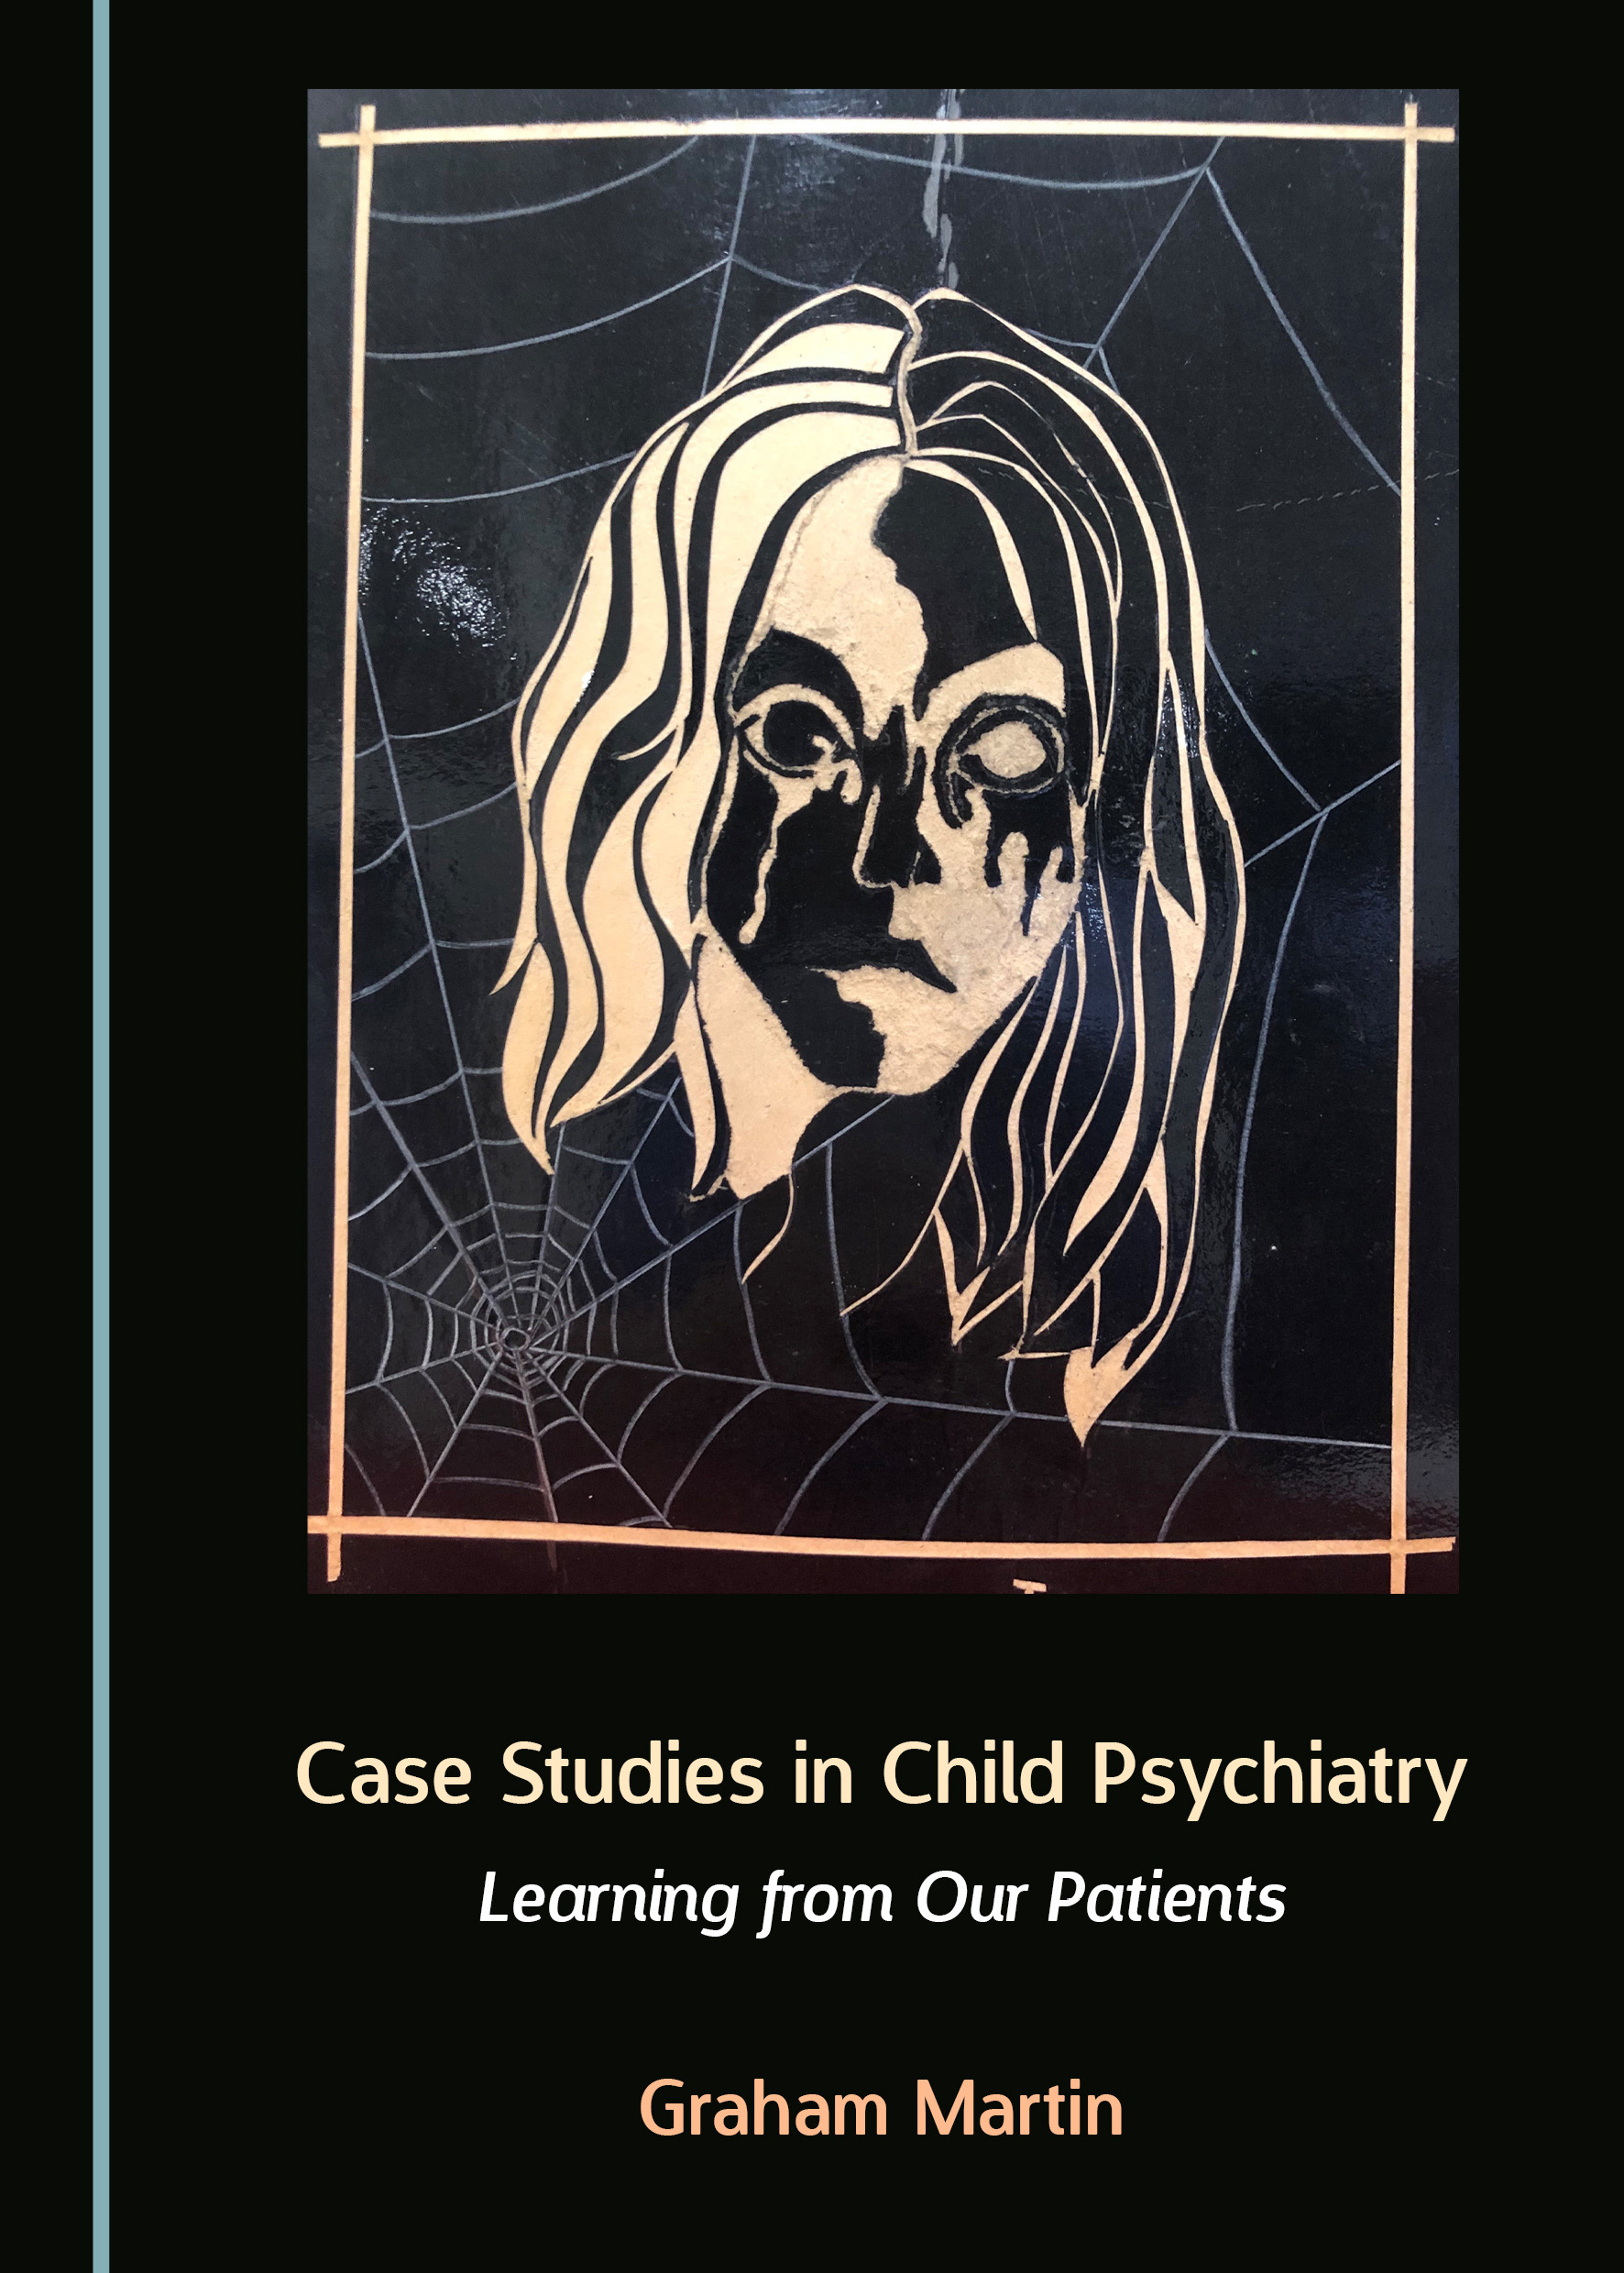 Case Studies in Child Psychiatry: Learning from Our Patients